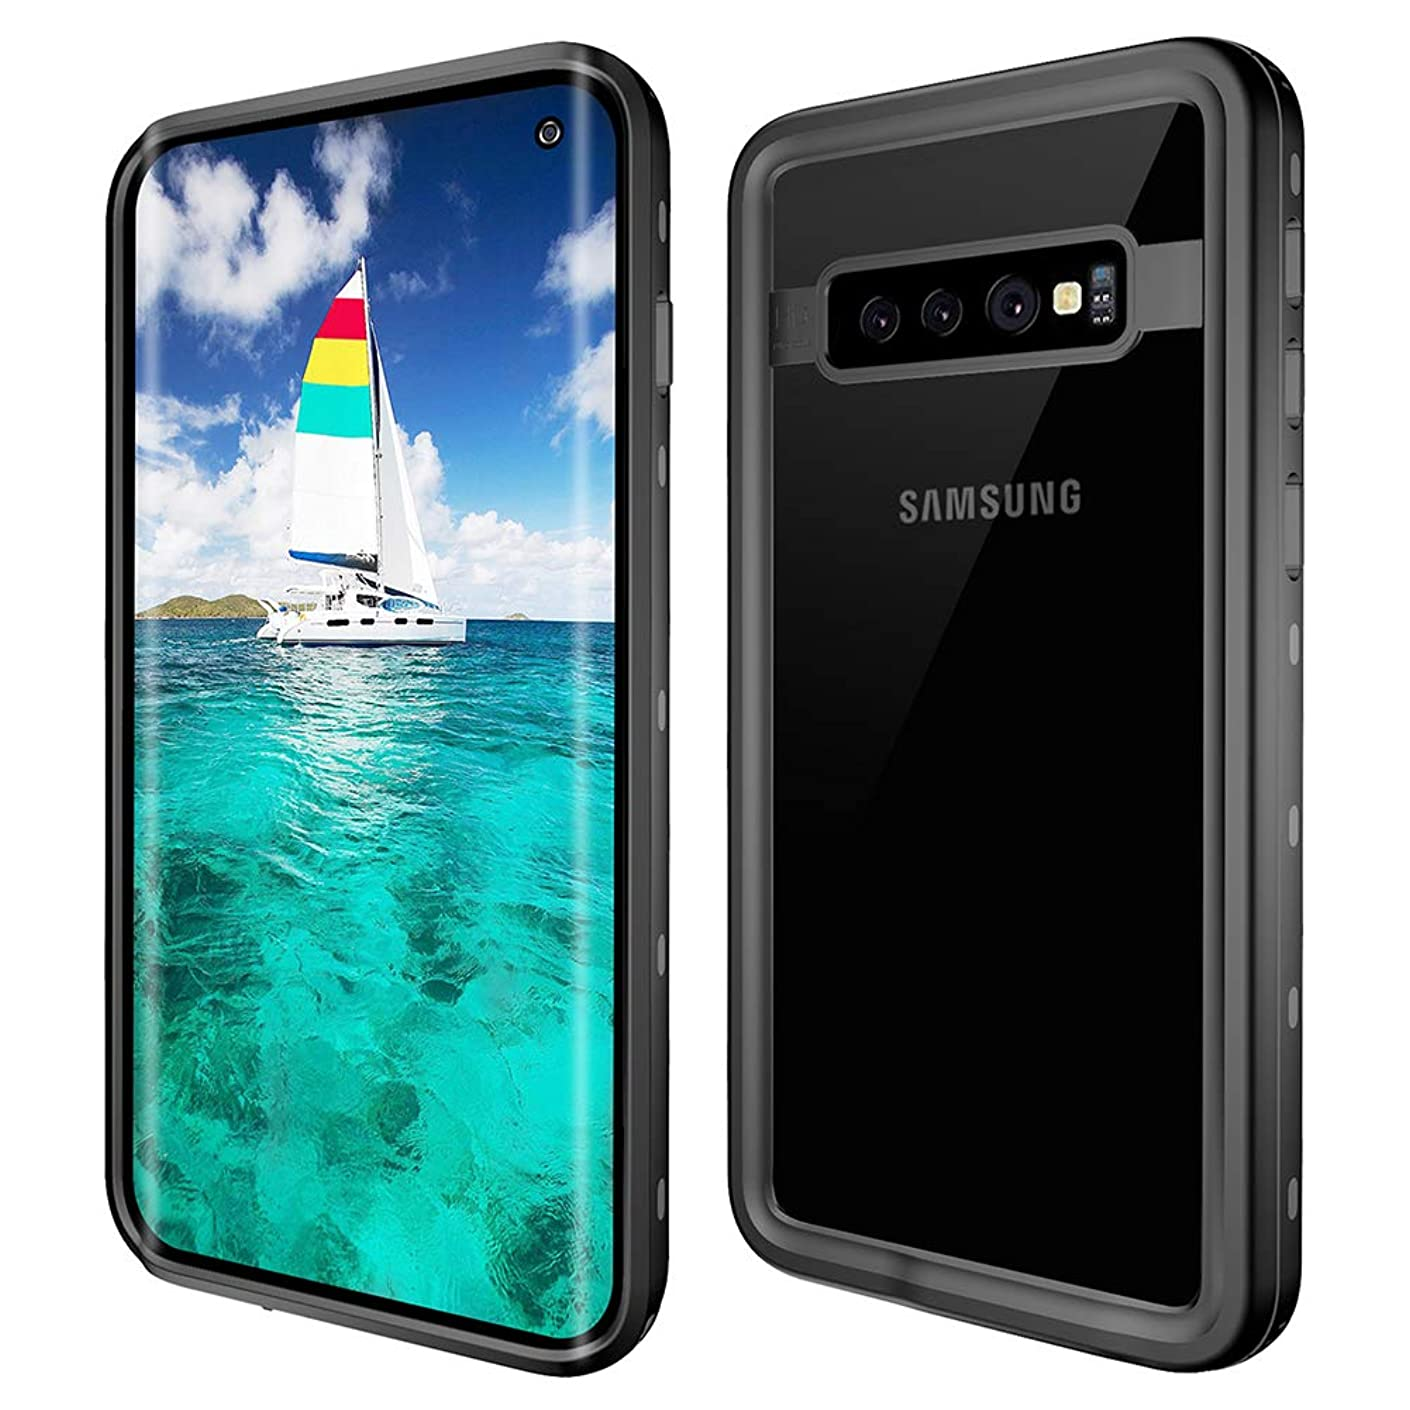 HONTECH Compatible Samsung Galaxy S10 Case, Galaxy S10 Waterproof Case, Full Body Shockproof Support Wireless Charging Snowproof Dirtproof Cover, Clear Black